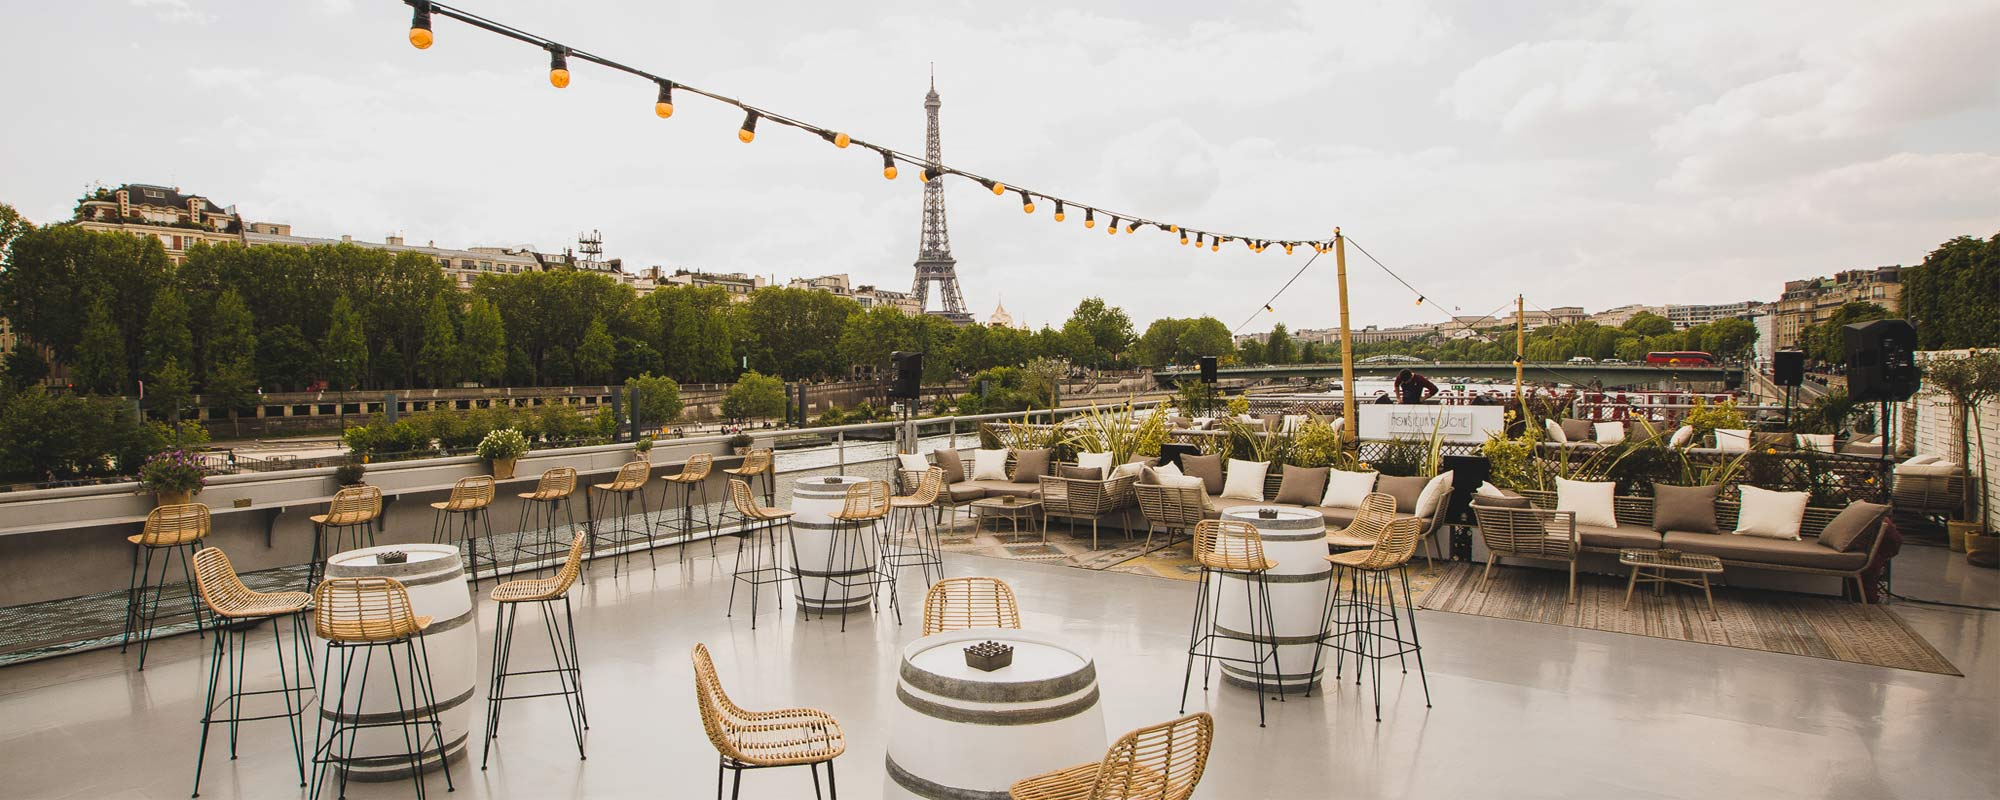 Terrace - Rooftop - Le Club restaurant Paris